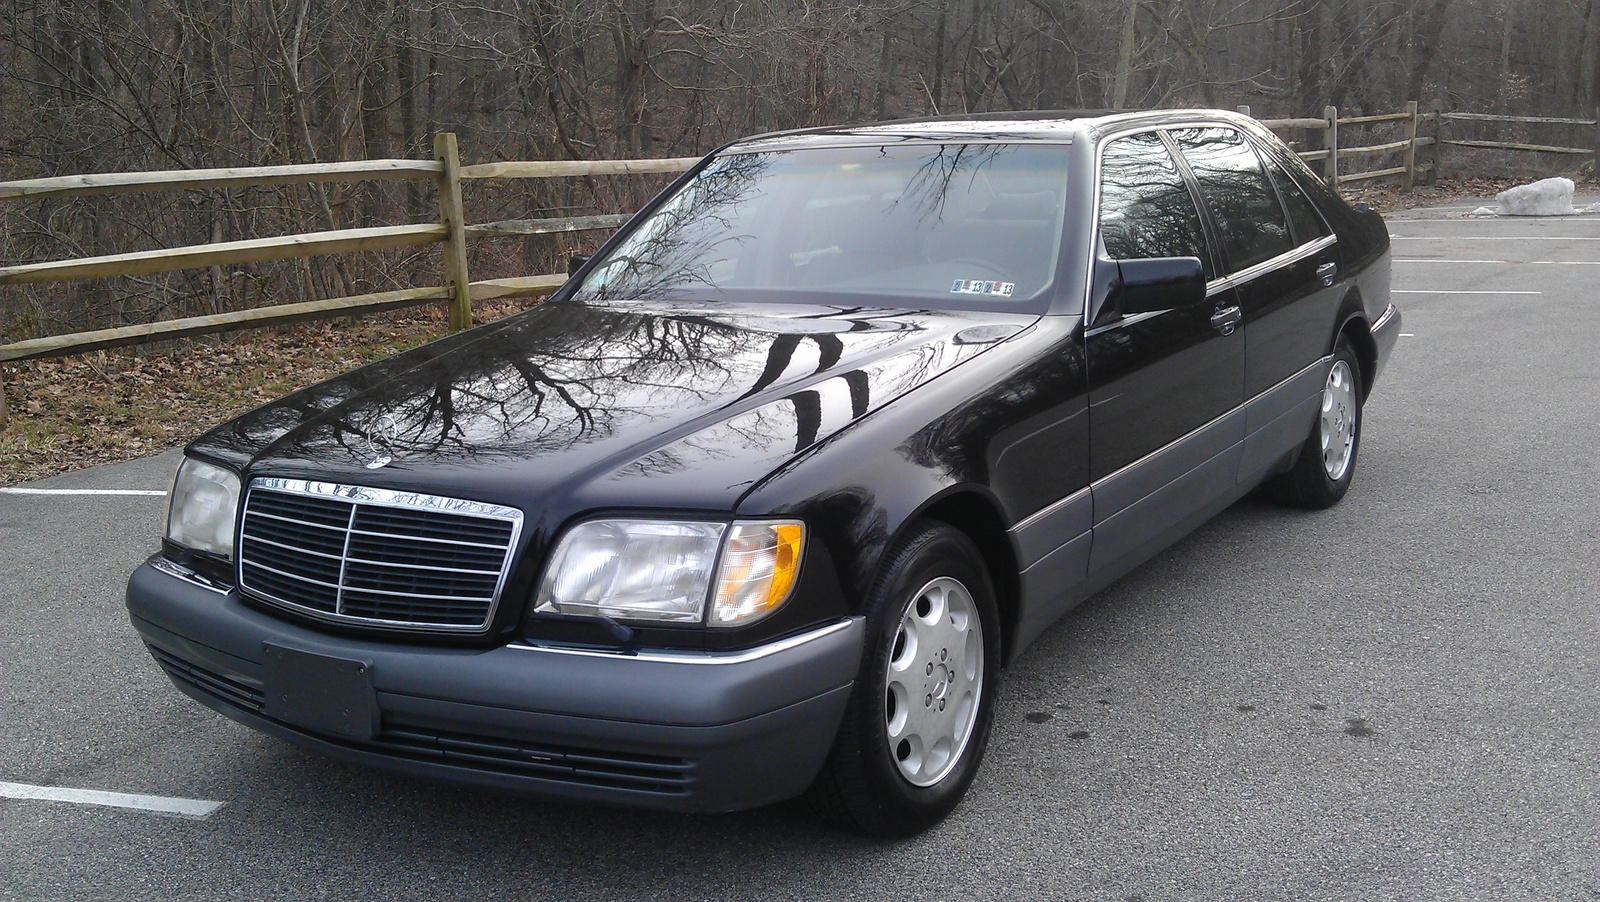 1995 mercedes benz s class exterior pictures cargurus For1995 Mercedes Benz S Class